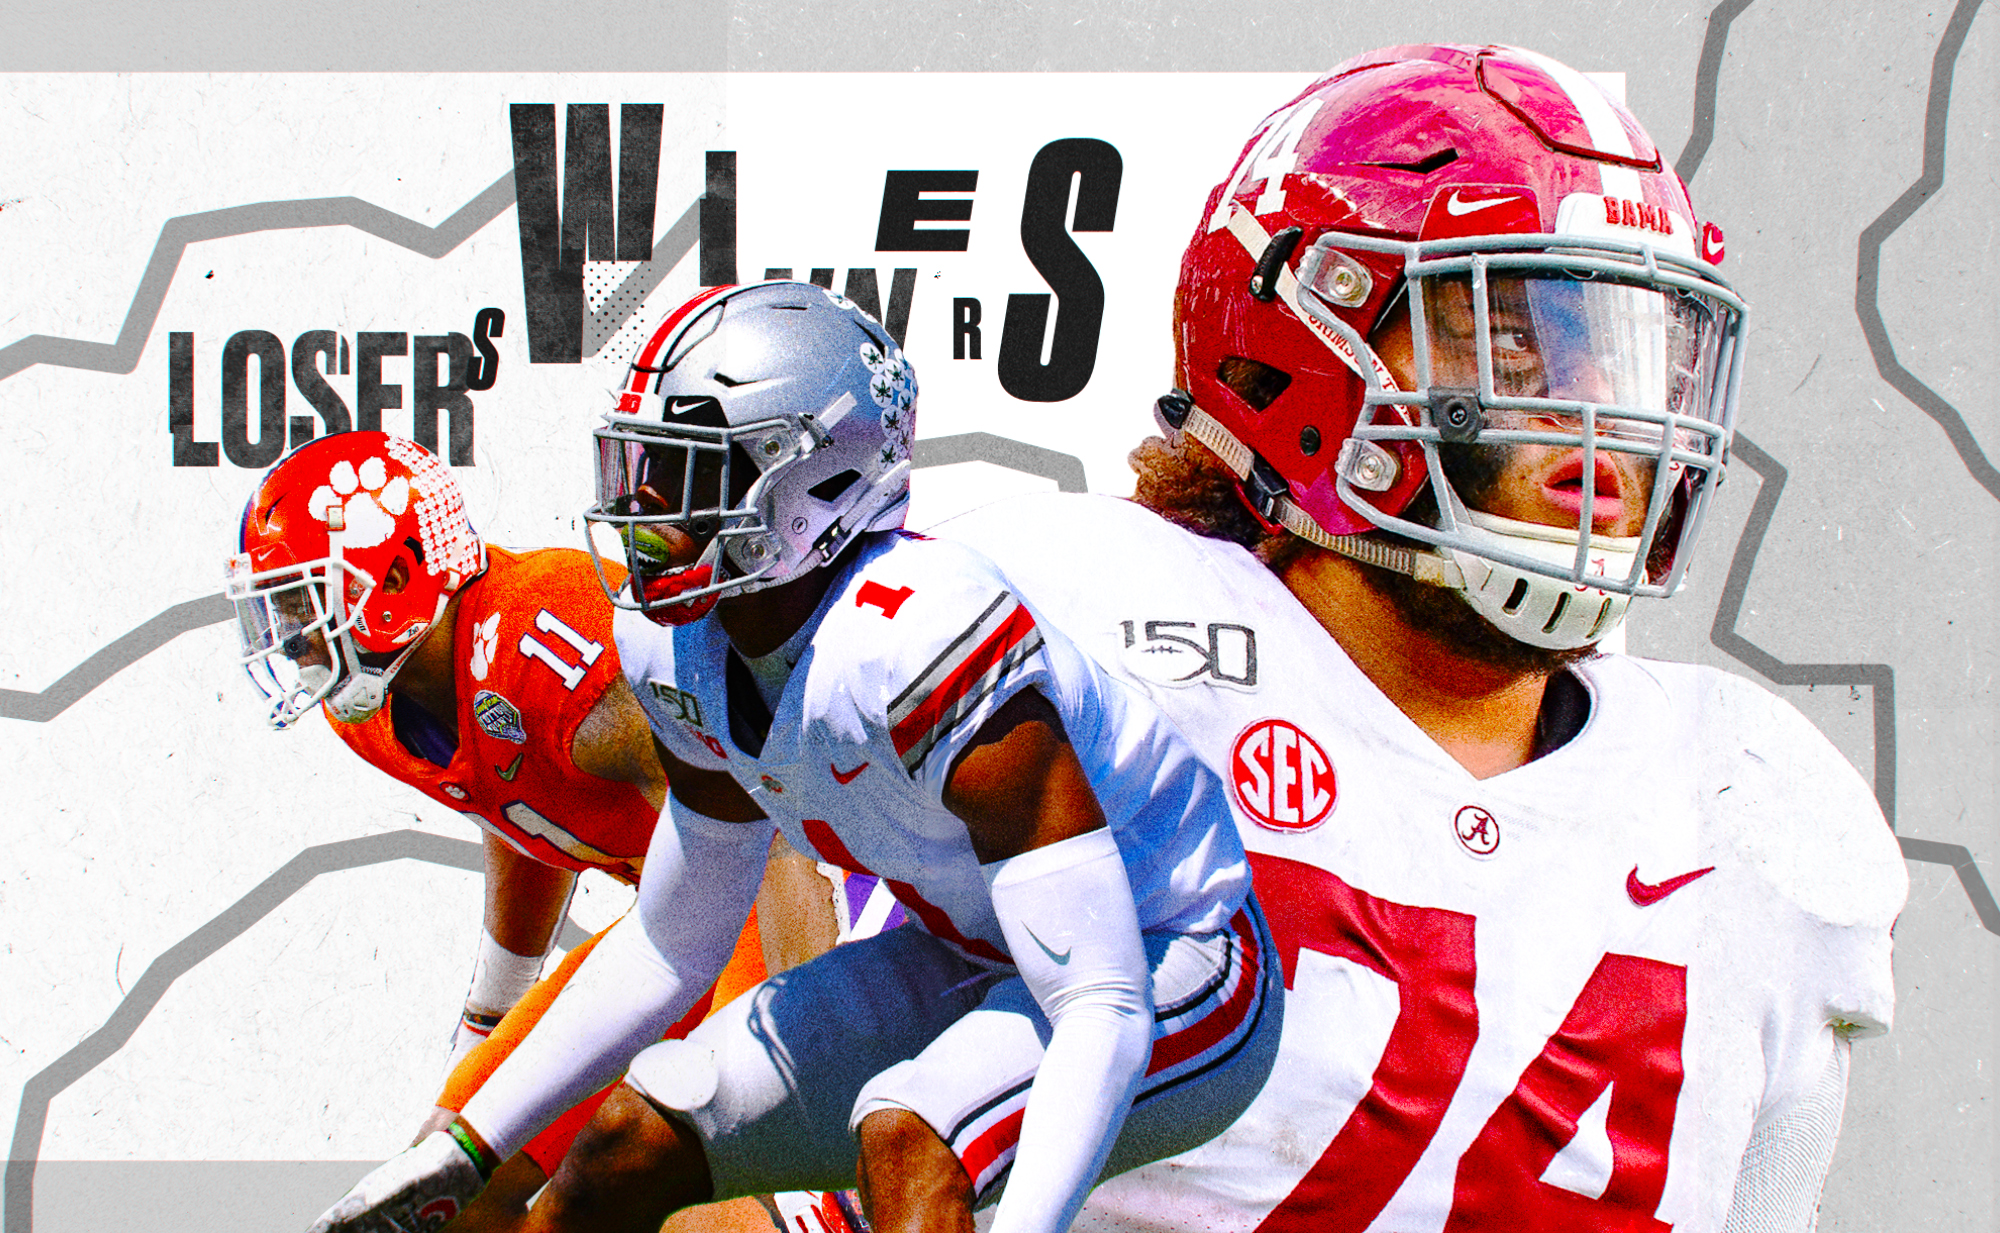 """An art collage of NFL Draft picks Isaiah Simmons, Jeff Okudah, and Jedrick Wills, superimposed on a black and white background with the words """"winners"""" and """"losers"""""""